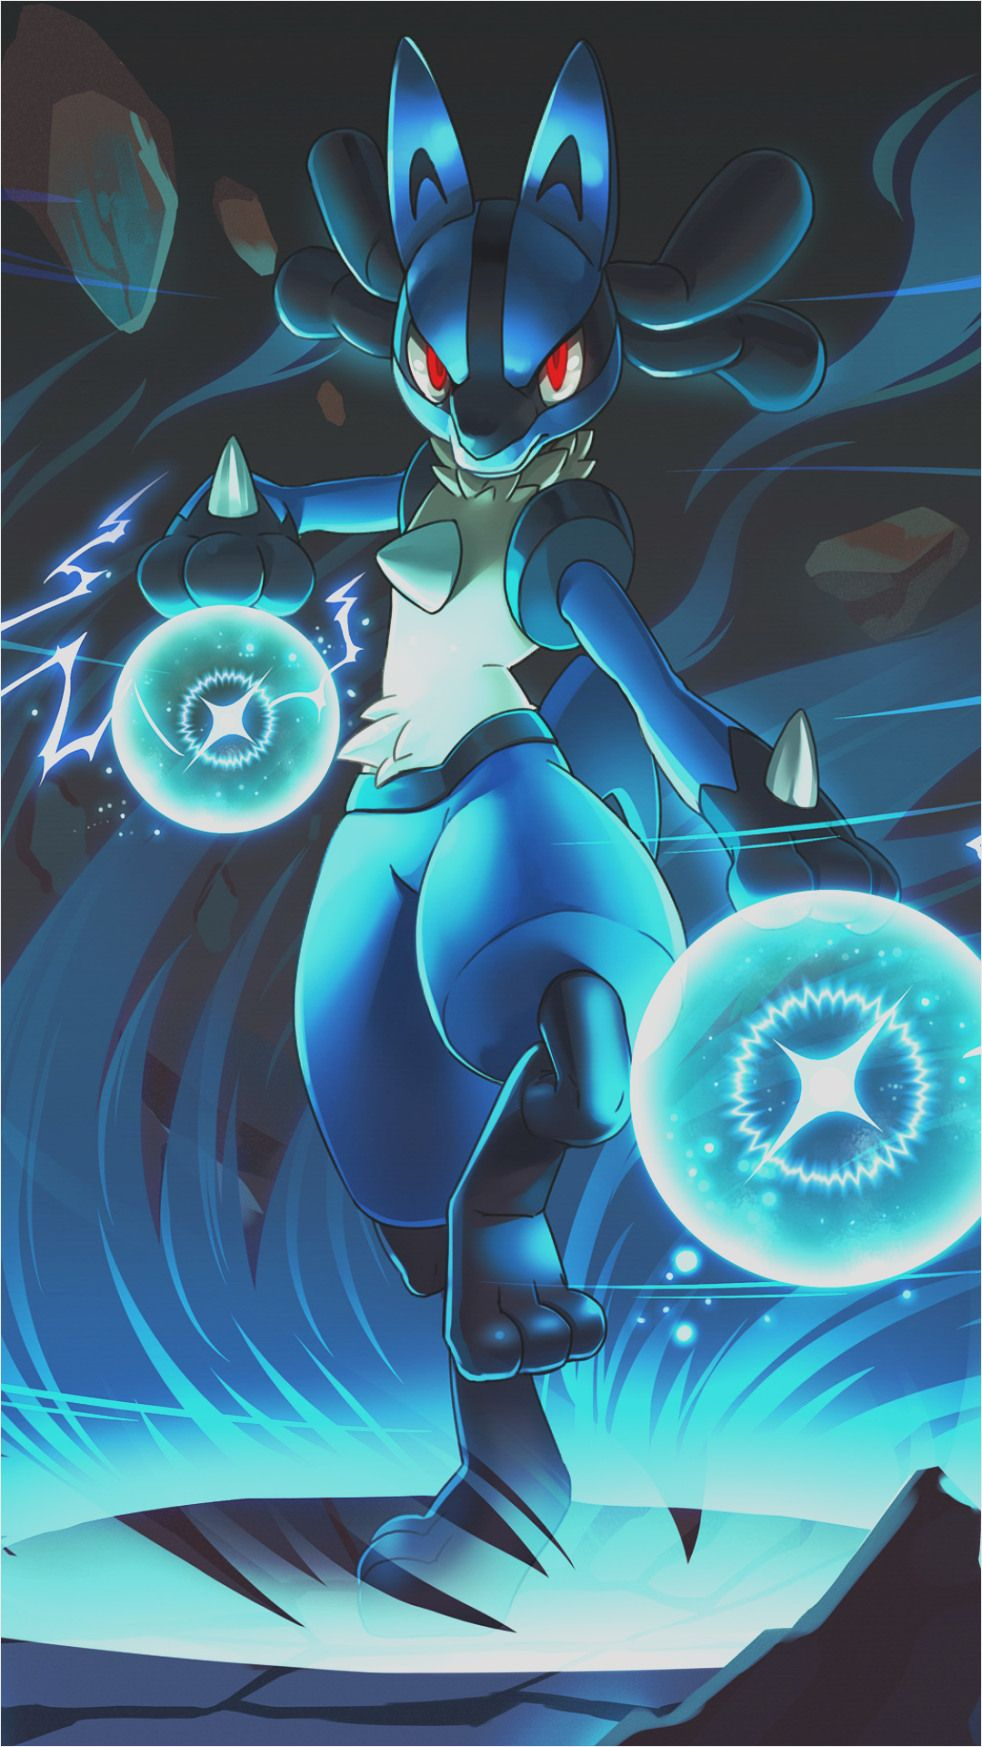 pokemon lucario wallpapers and backgrounds available for download for free Wallpaper Of Pokemon Lucario